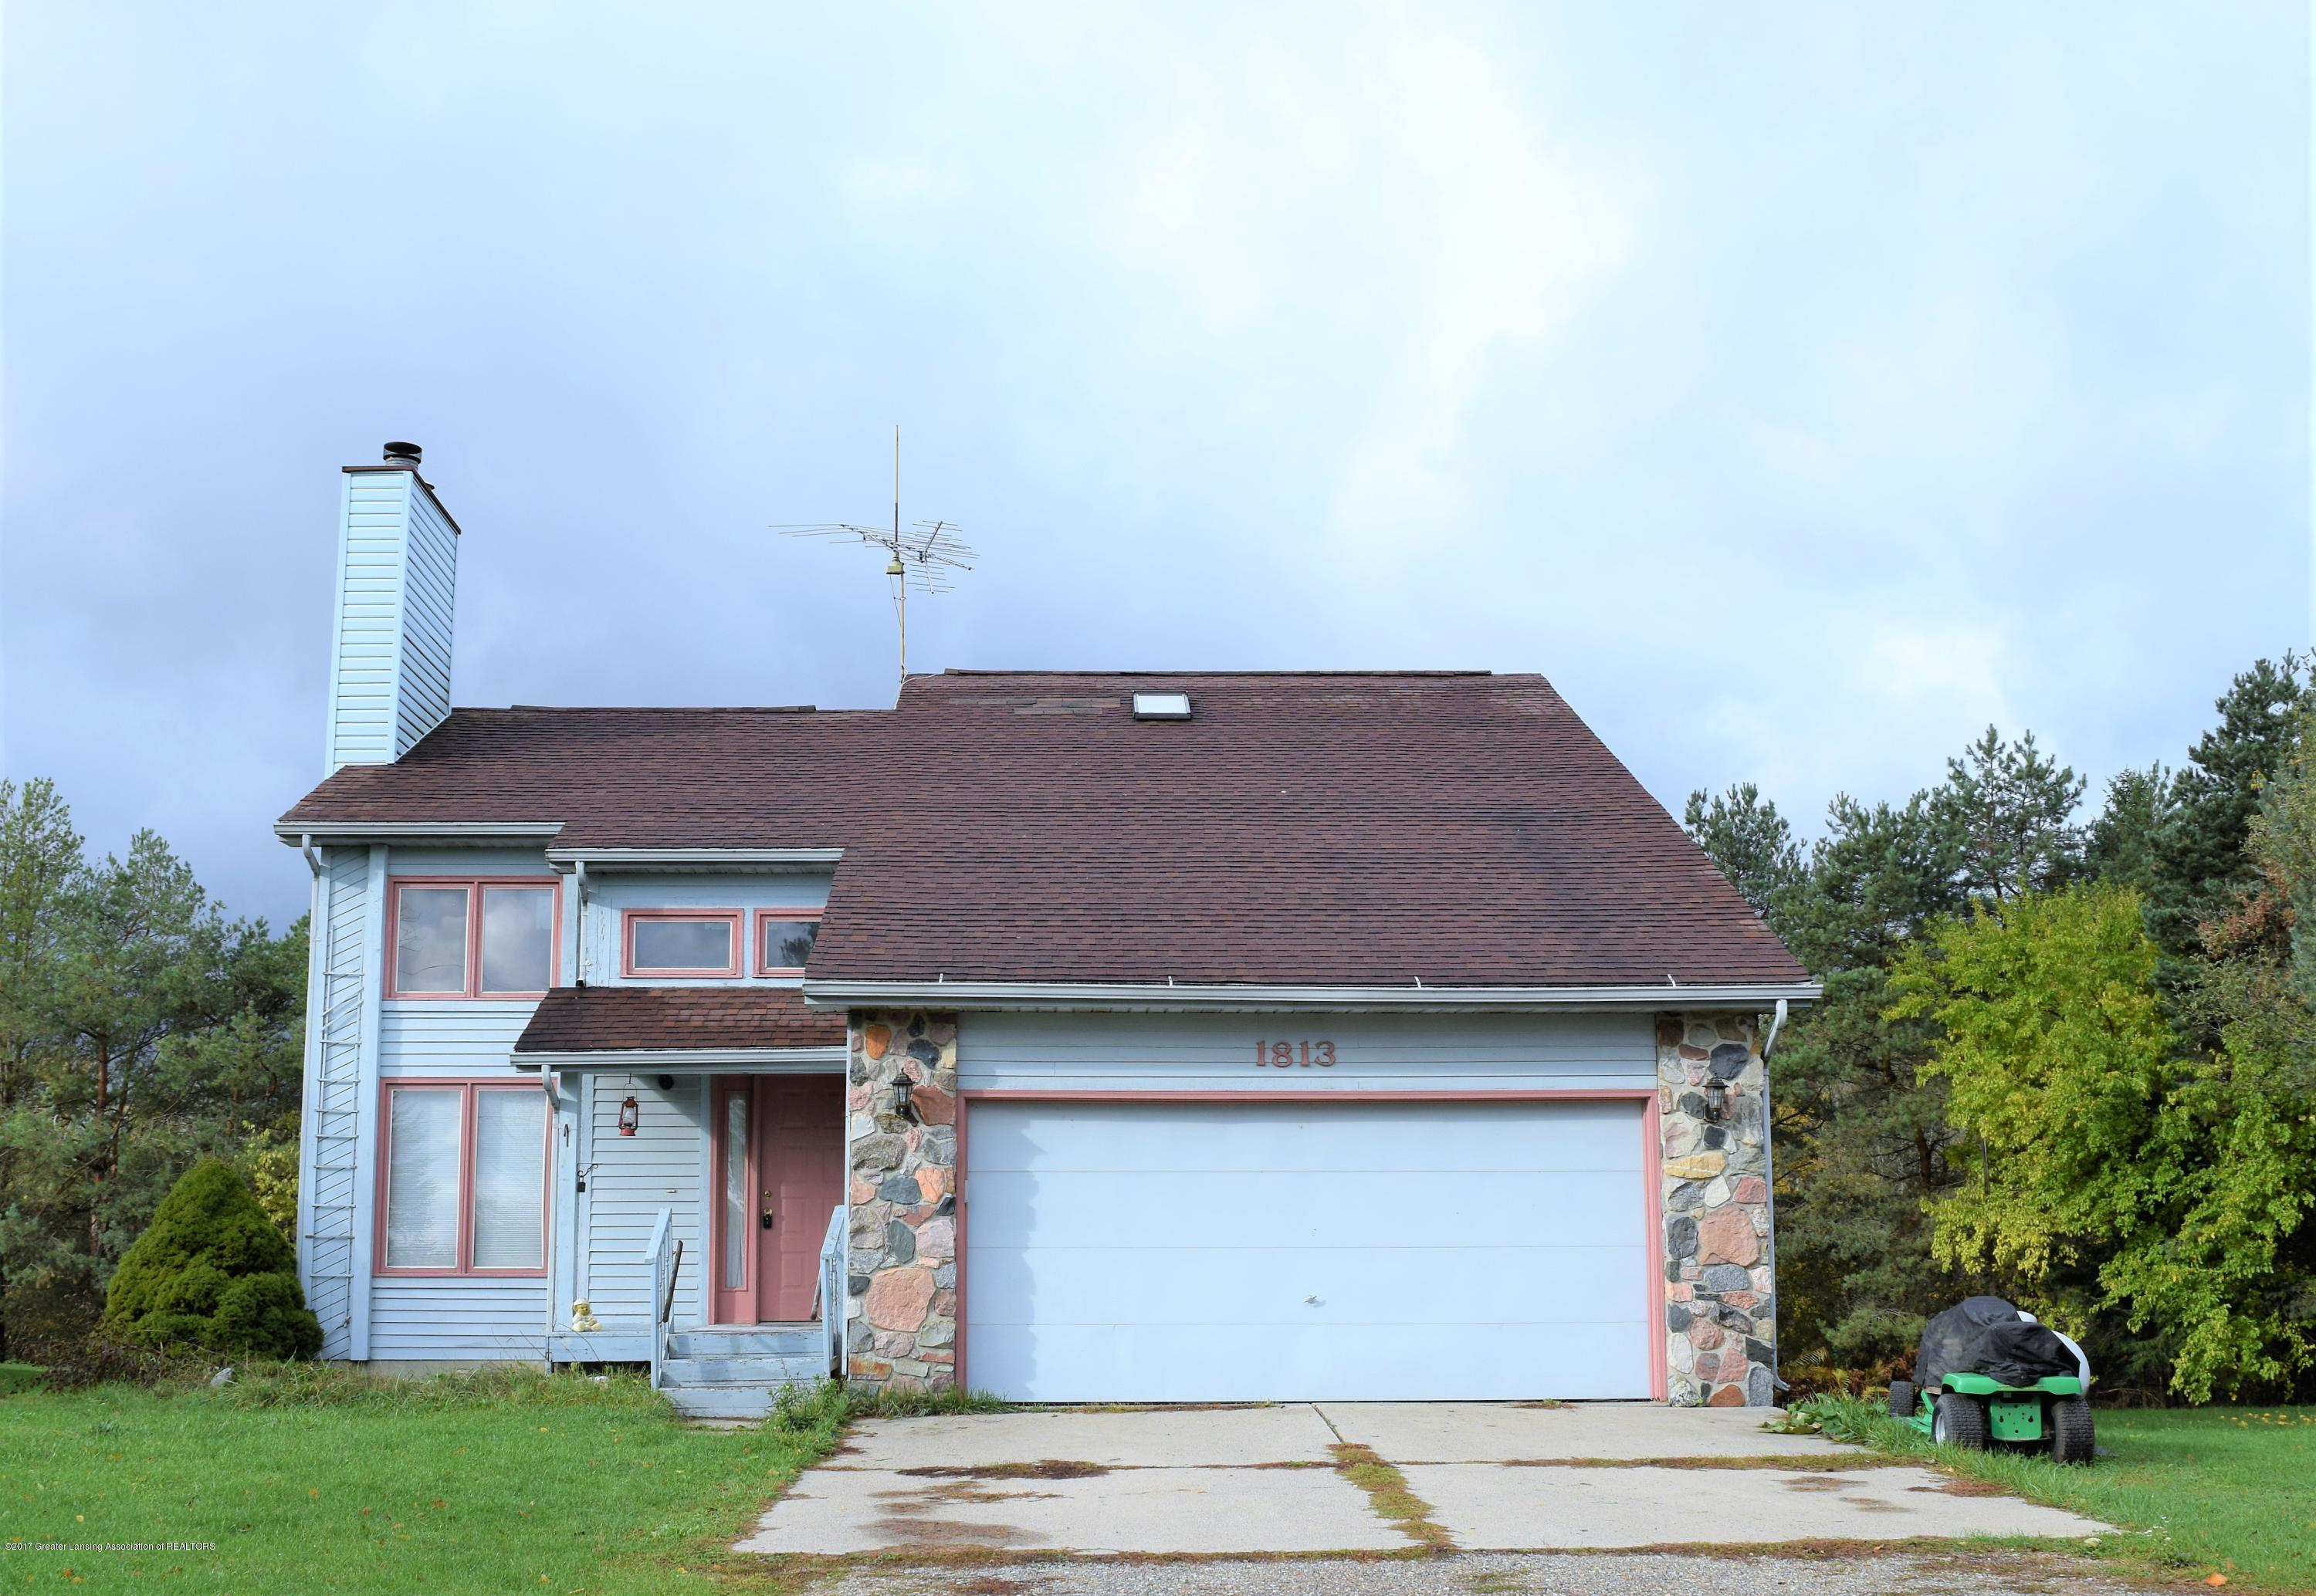 1813 N Michigan Rd - Ex Front - 1